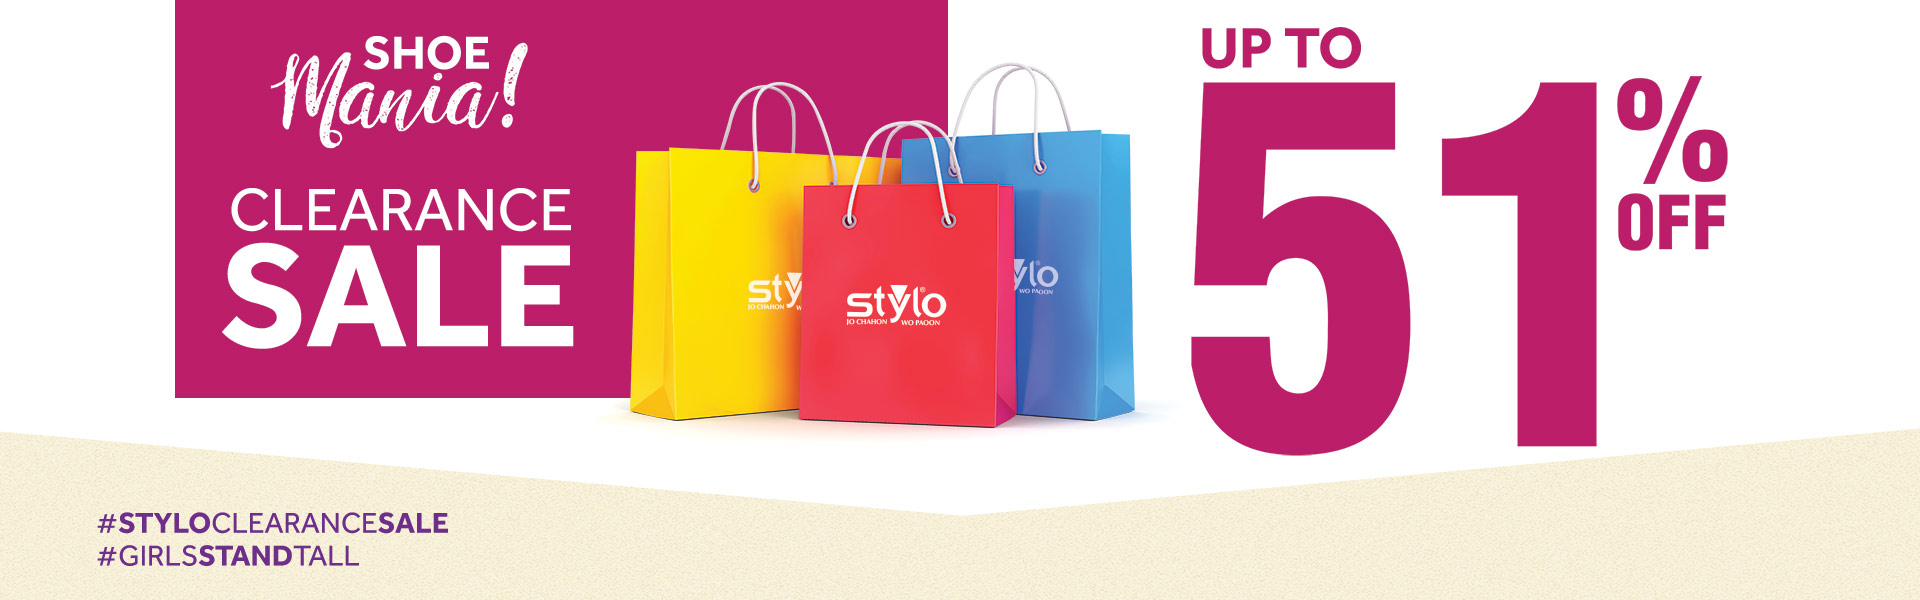 Stylo Shoes - Winter Clearance Sale